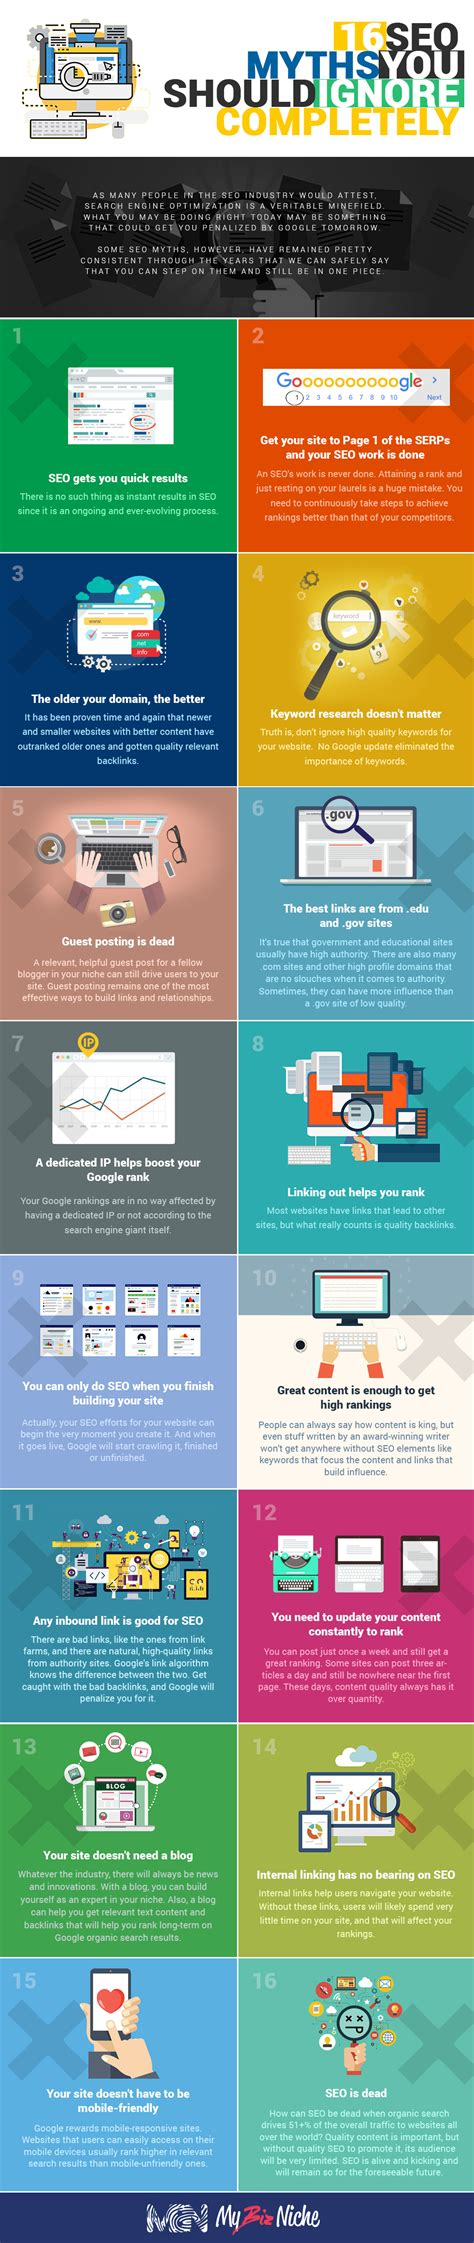 best seo 16 best seo truths put the myths to rest infographic